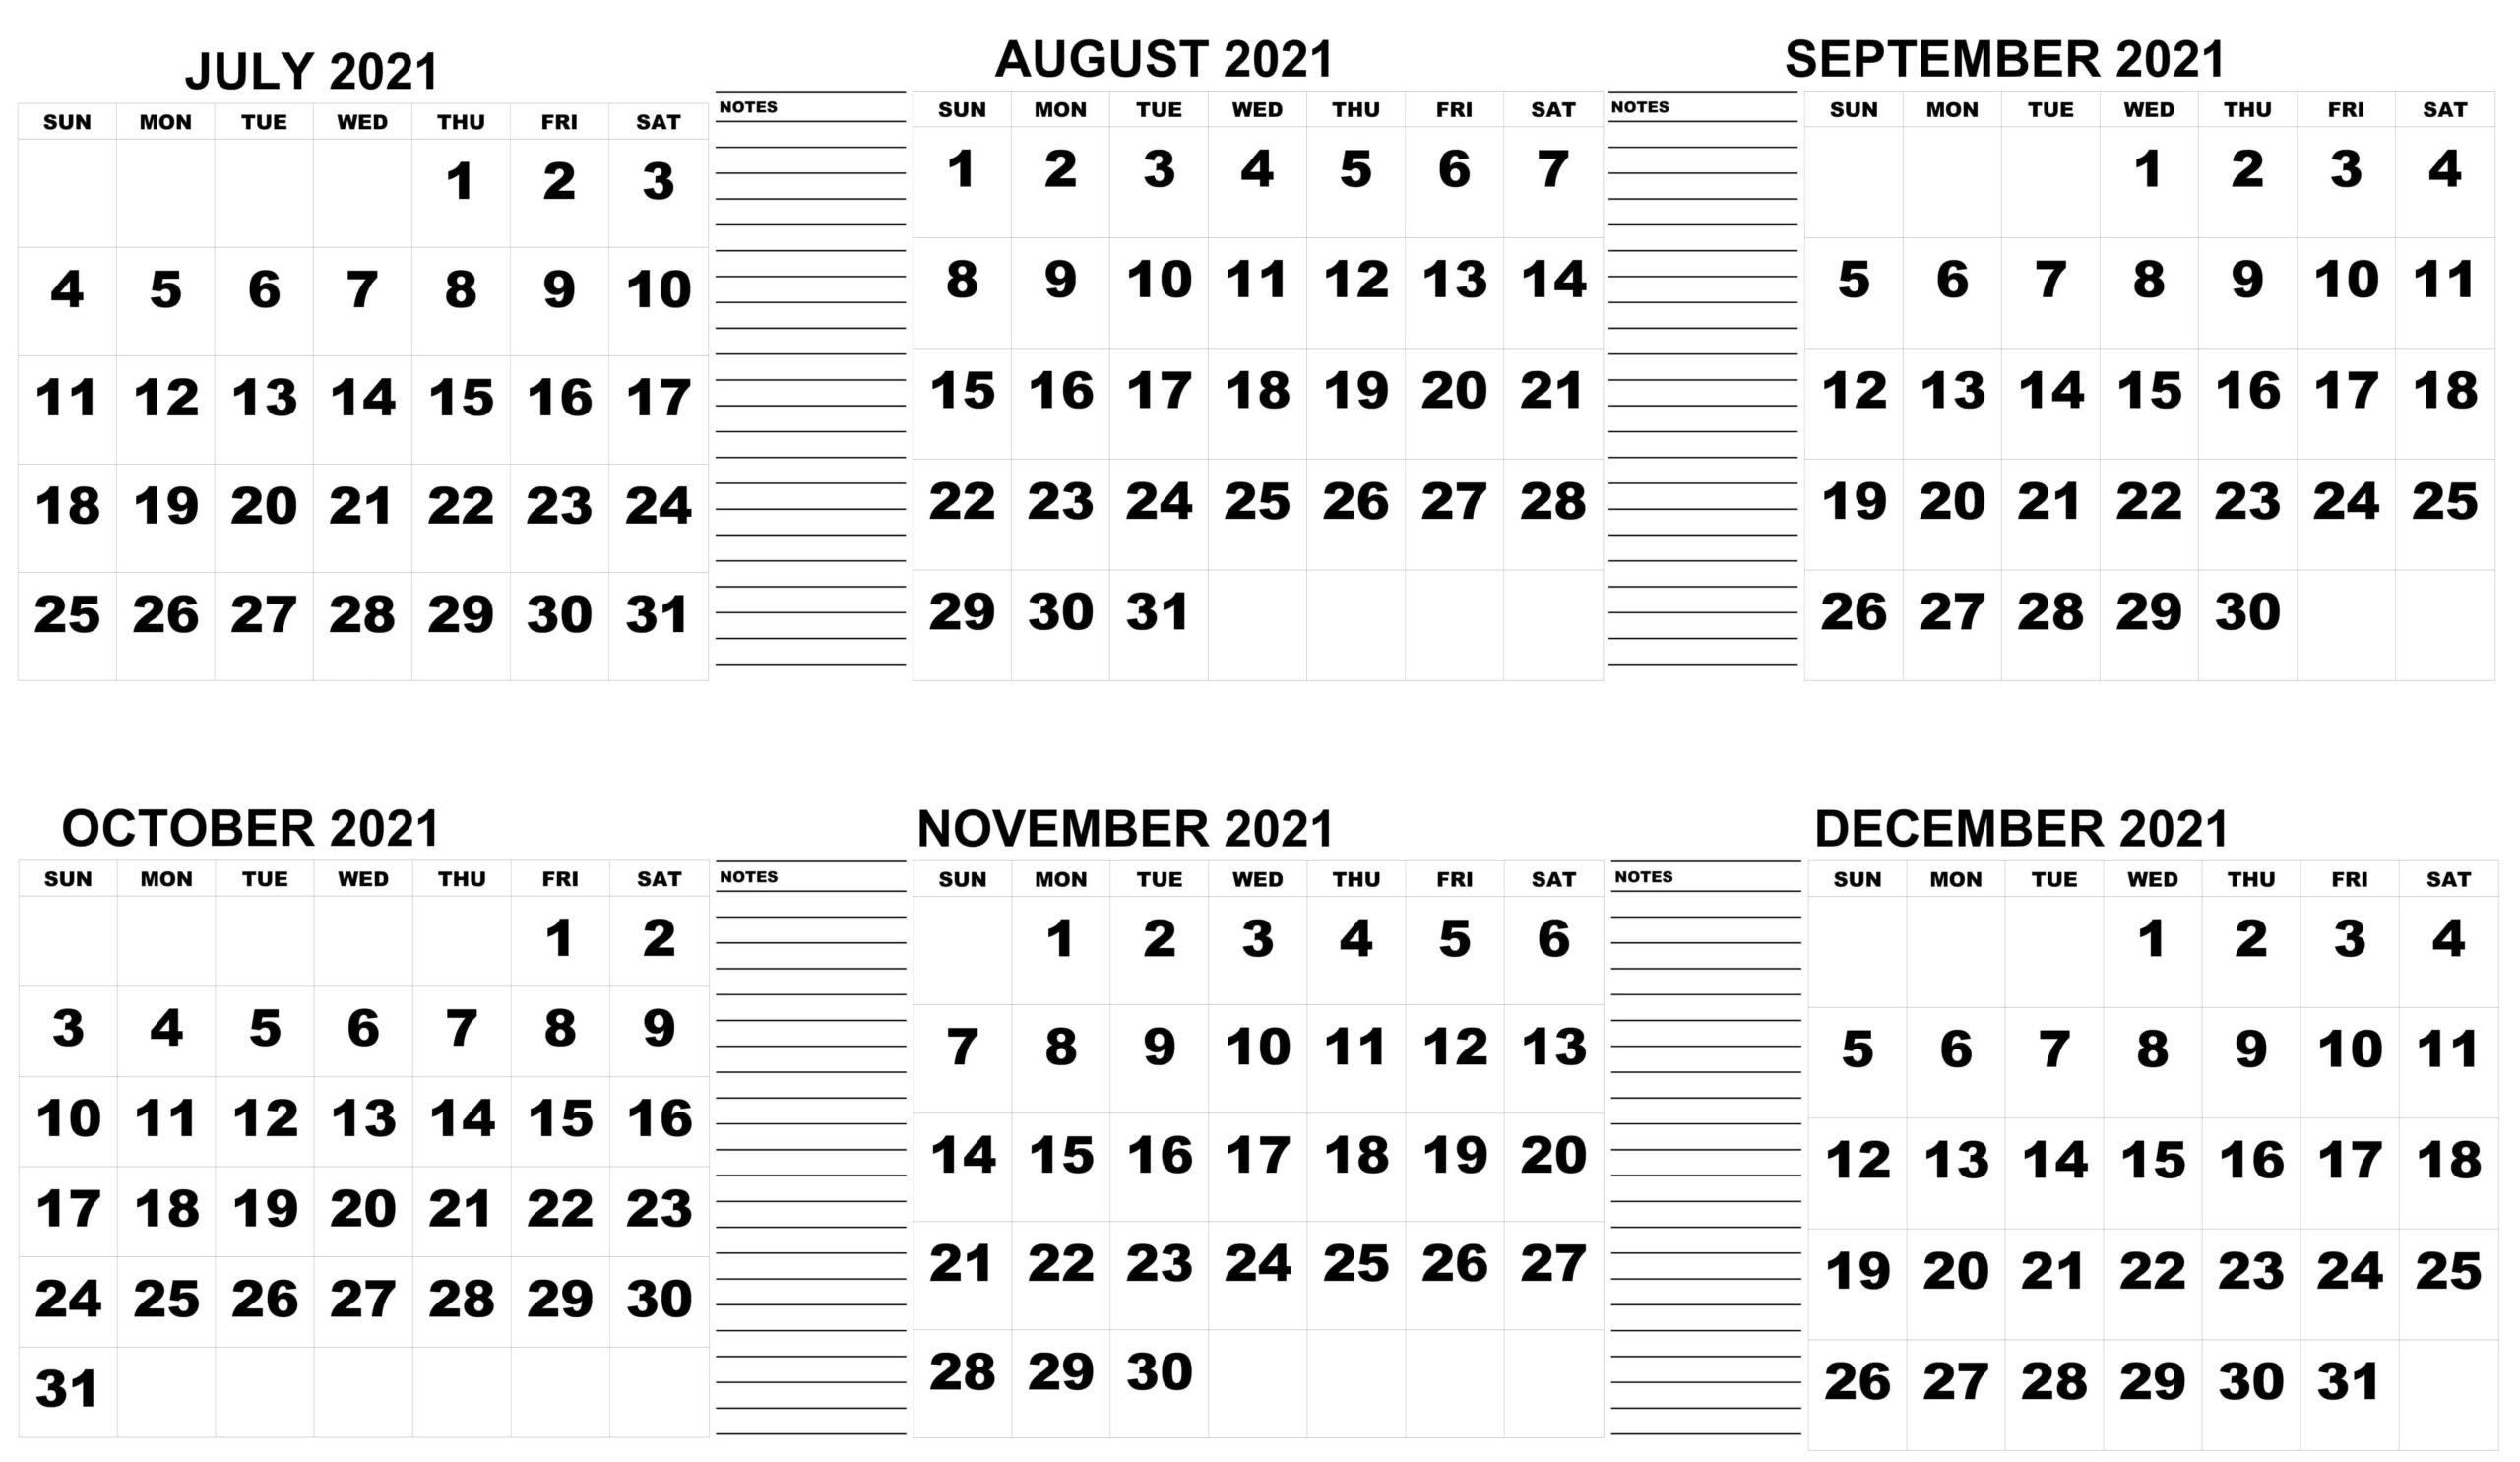 Half-yearly Calendar From July 2021